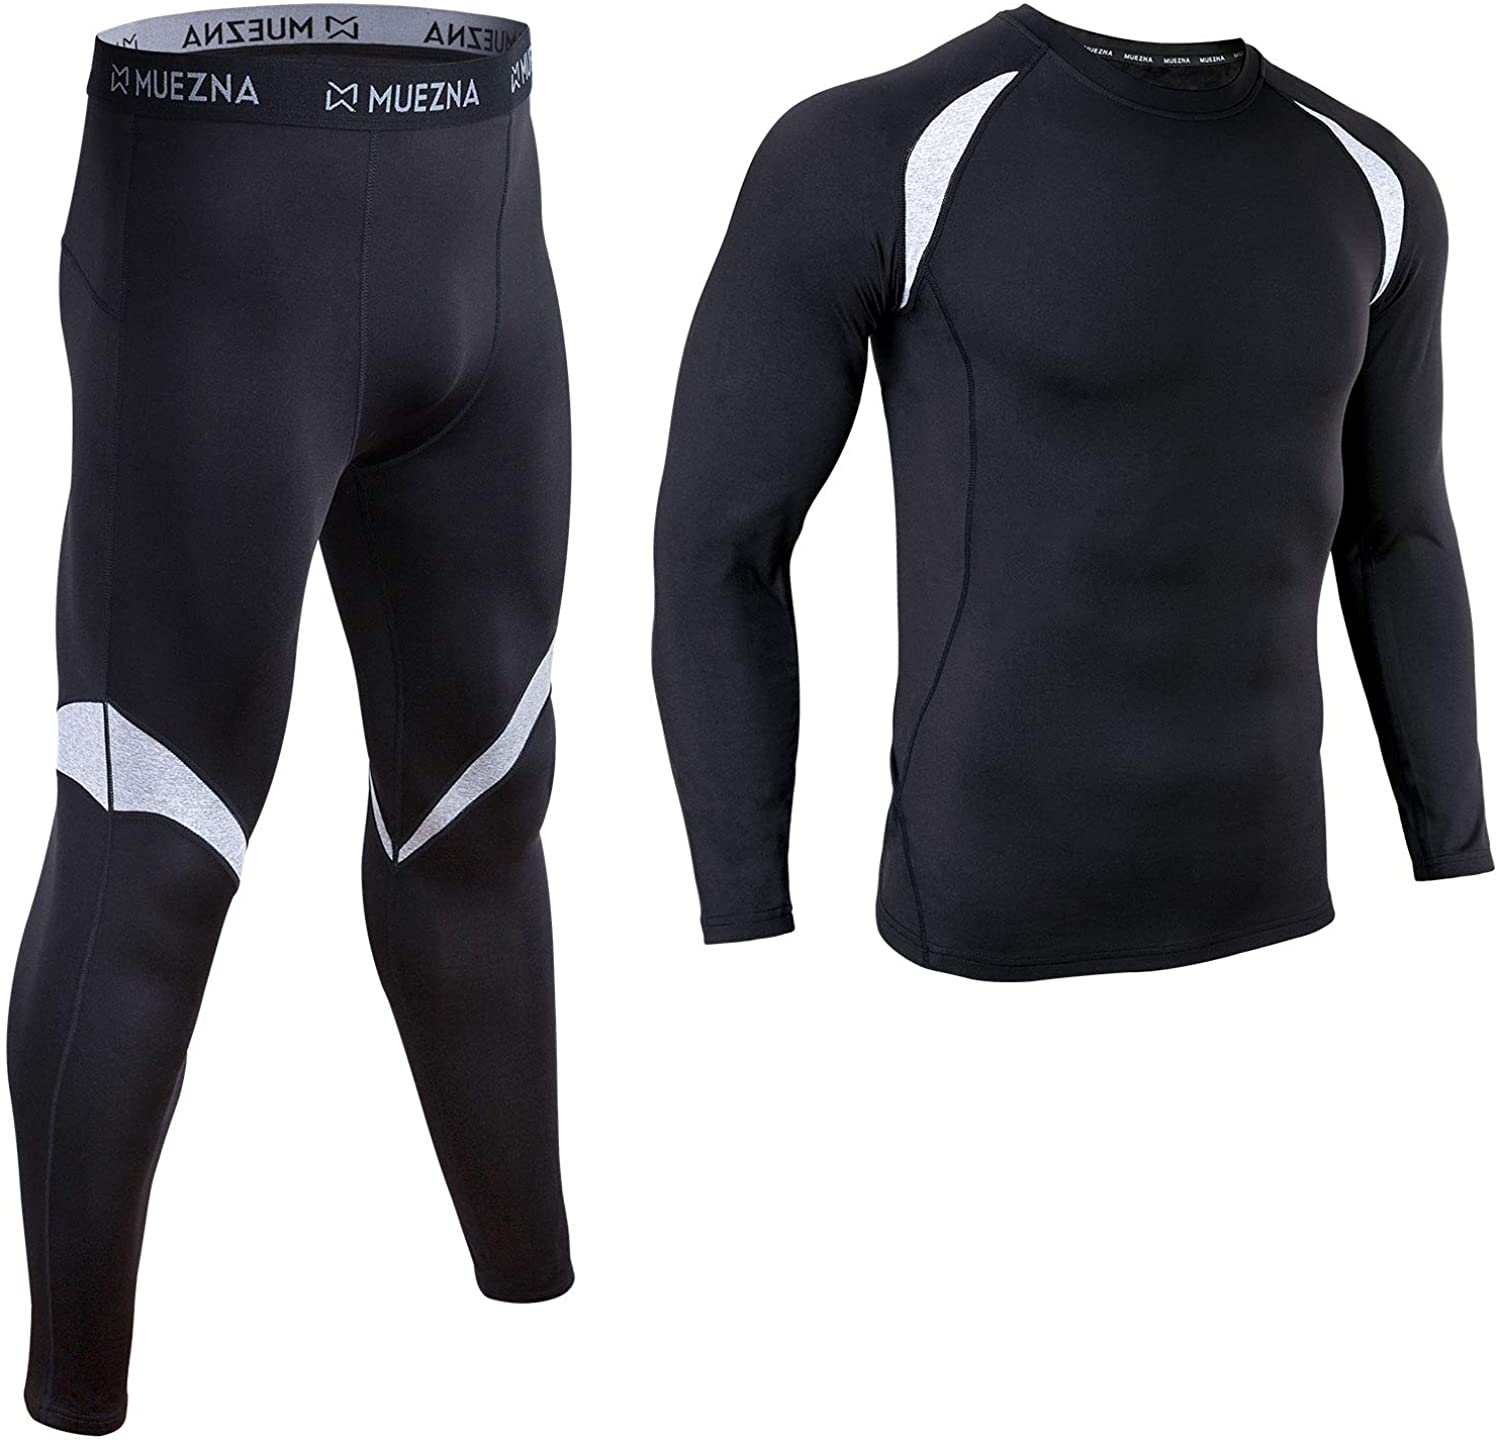 Men's Thermal Top and Bottom Set Underwear Long Johns Base Layer with Soft Fleece Lined…